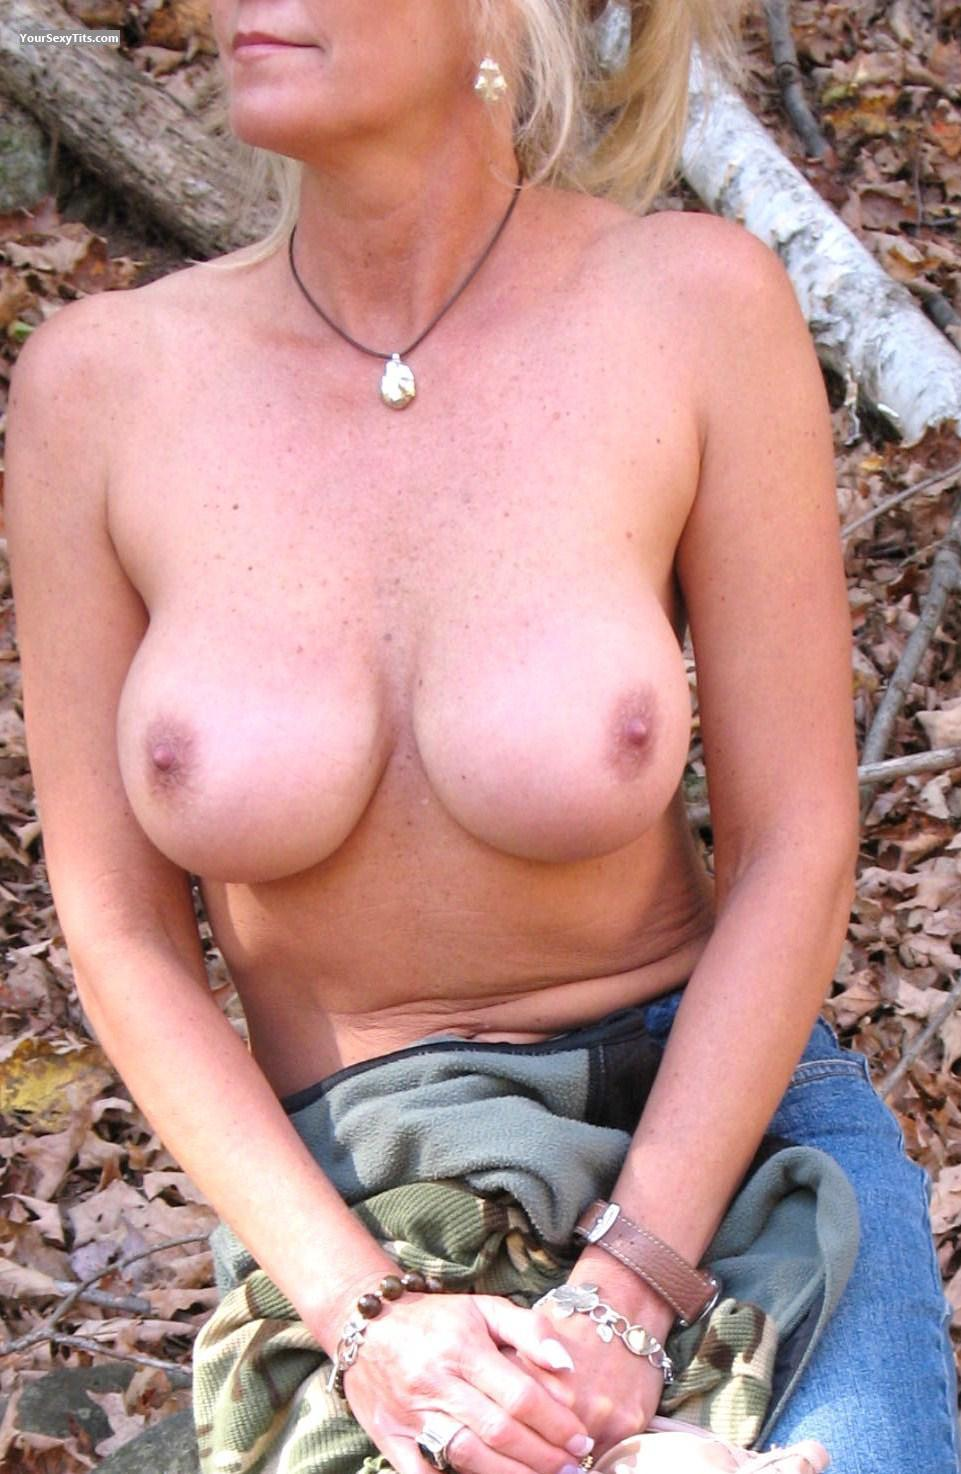 Tit Flash: Big Tits - Jenn from United States